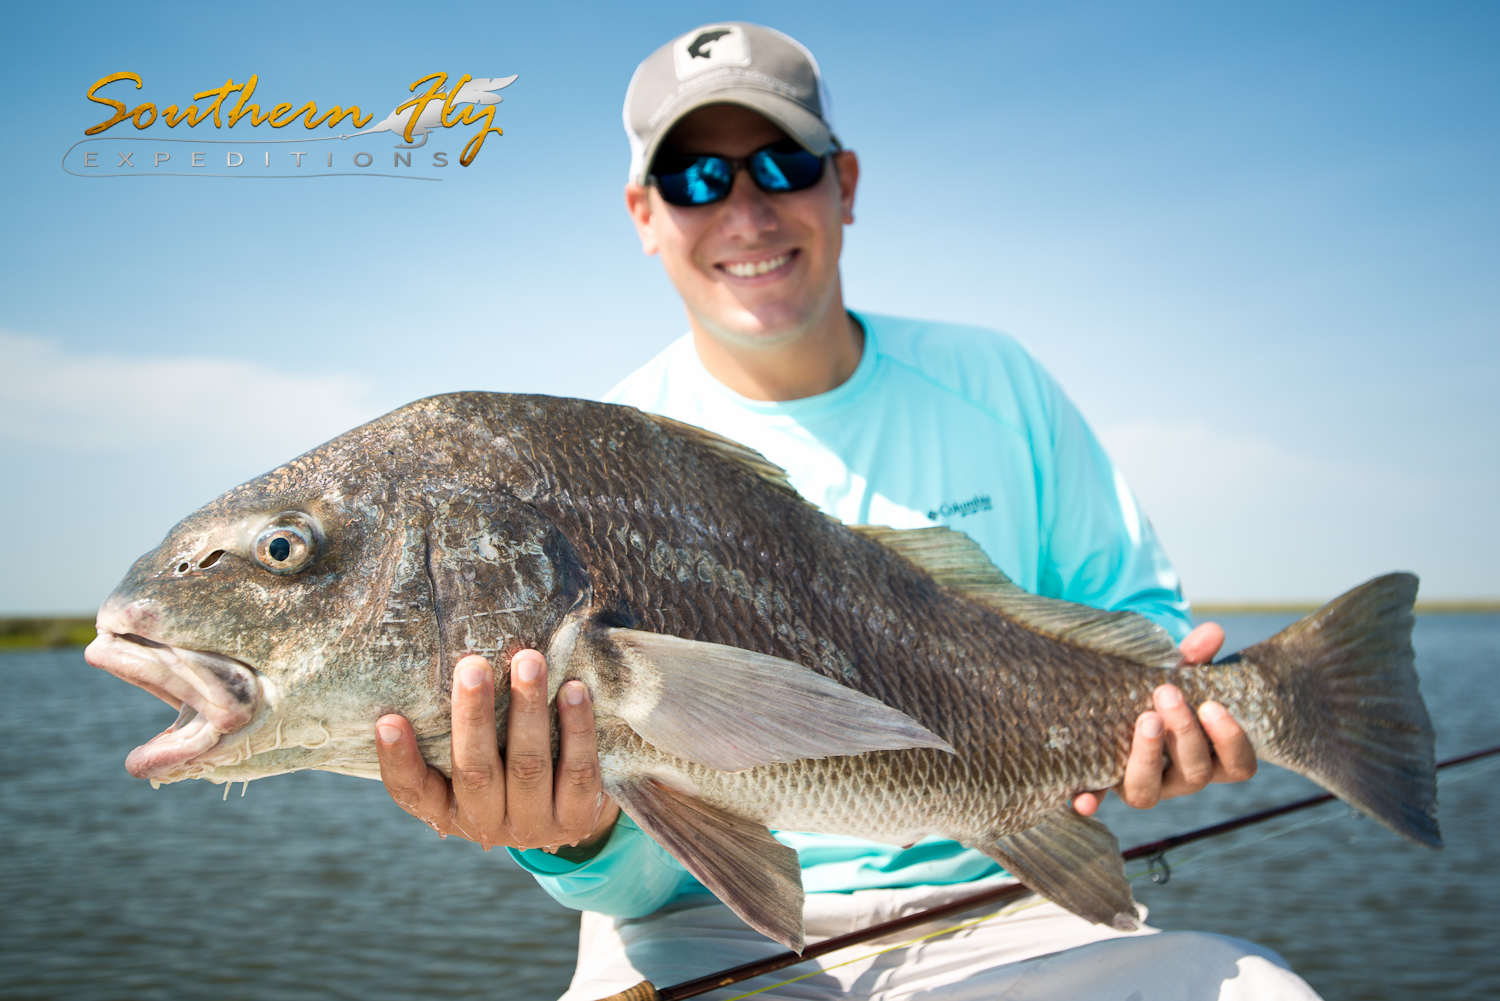 Fly Fishing for Black Drum with Southern Fly Expeditions